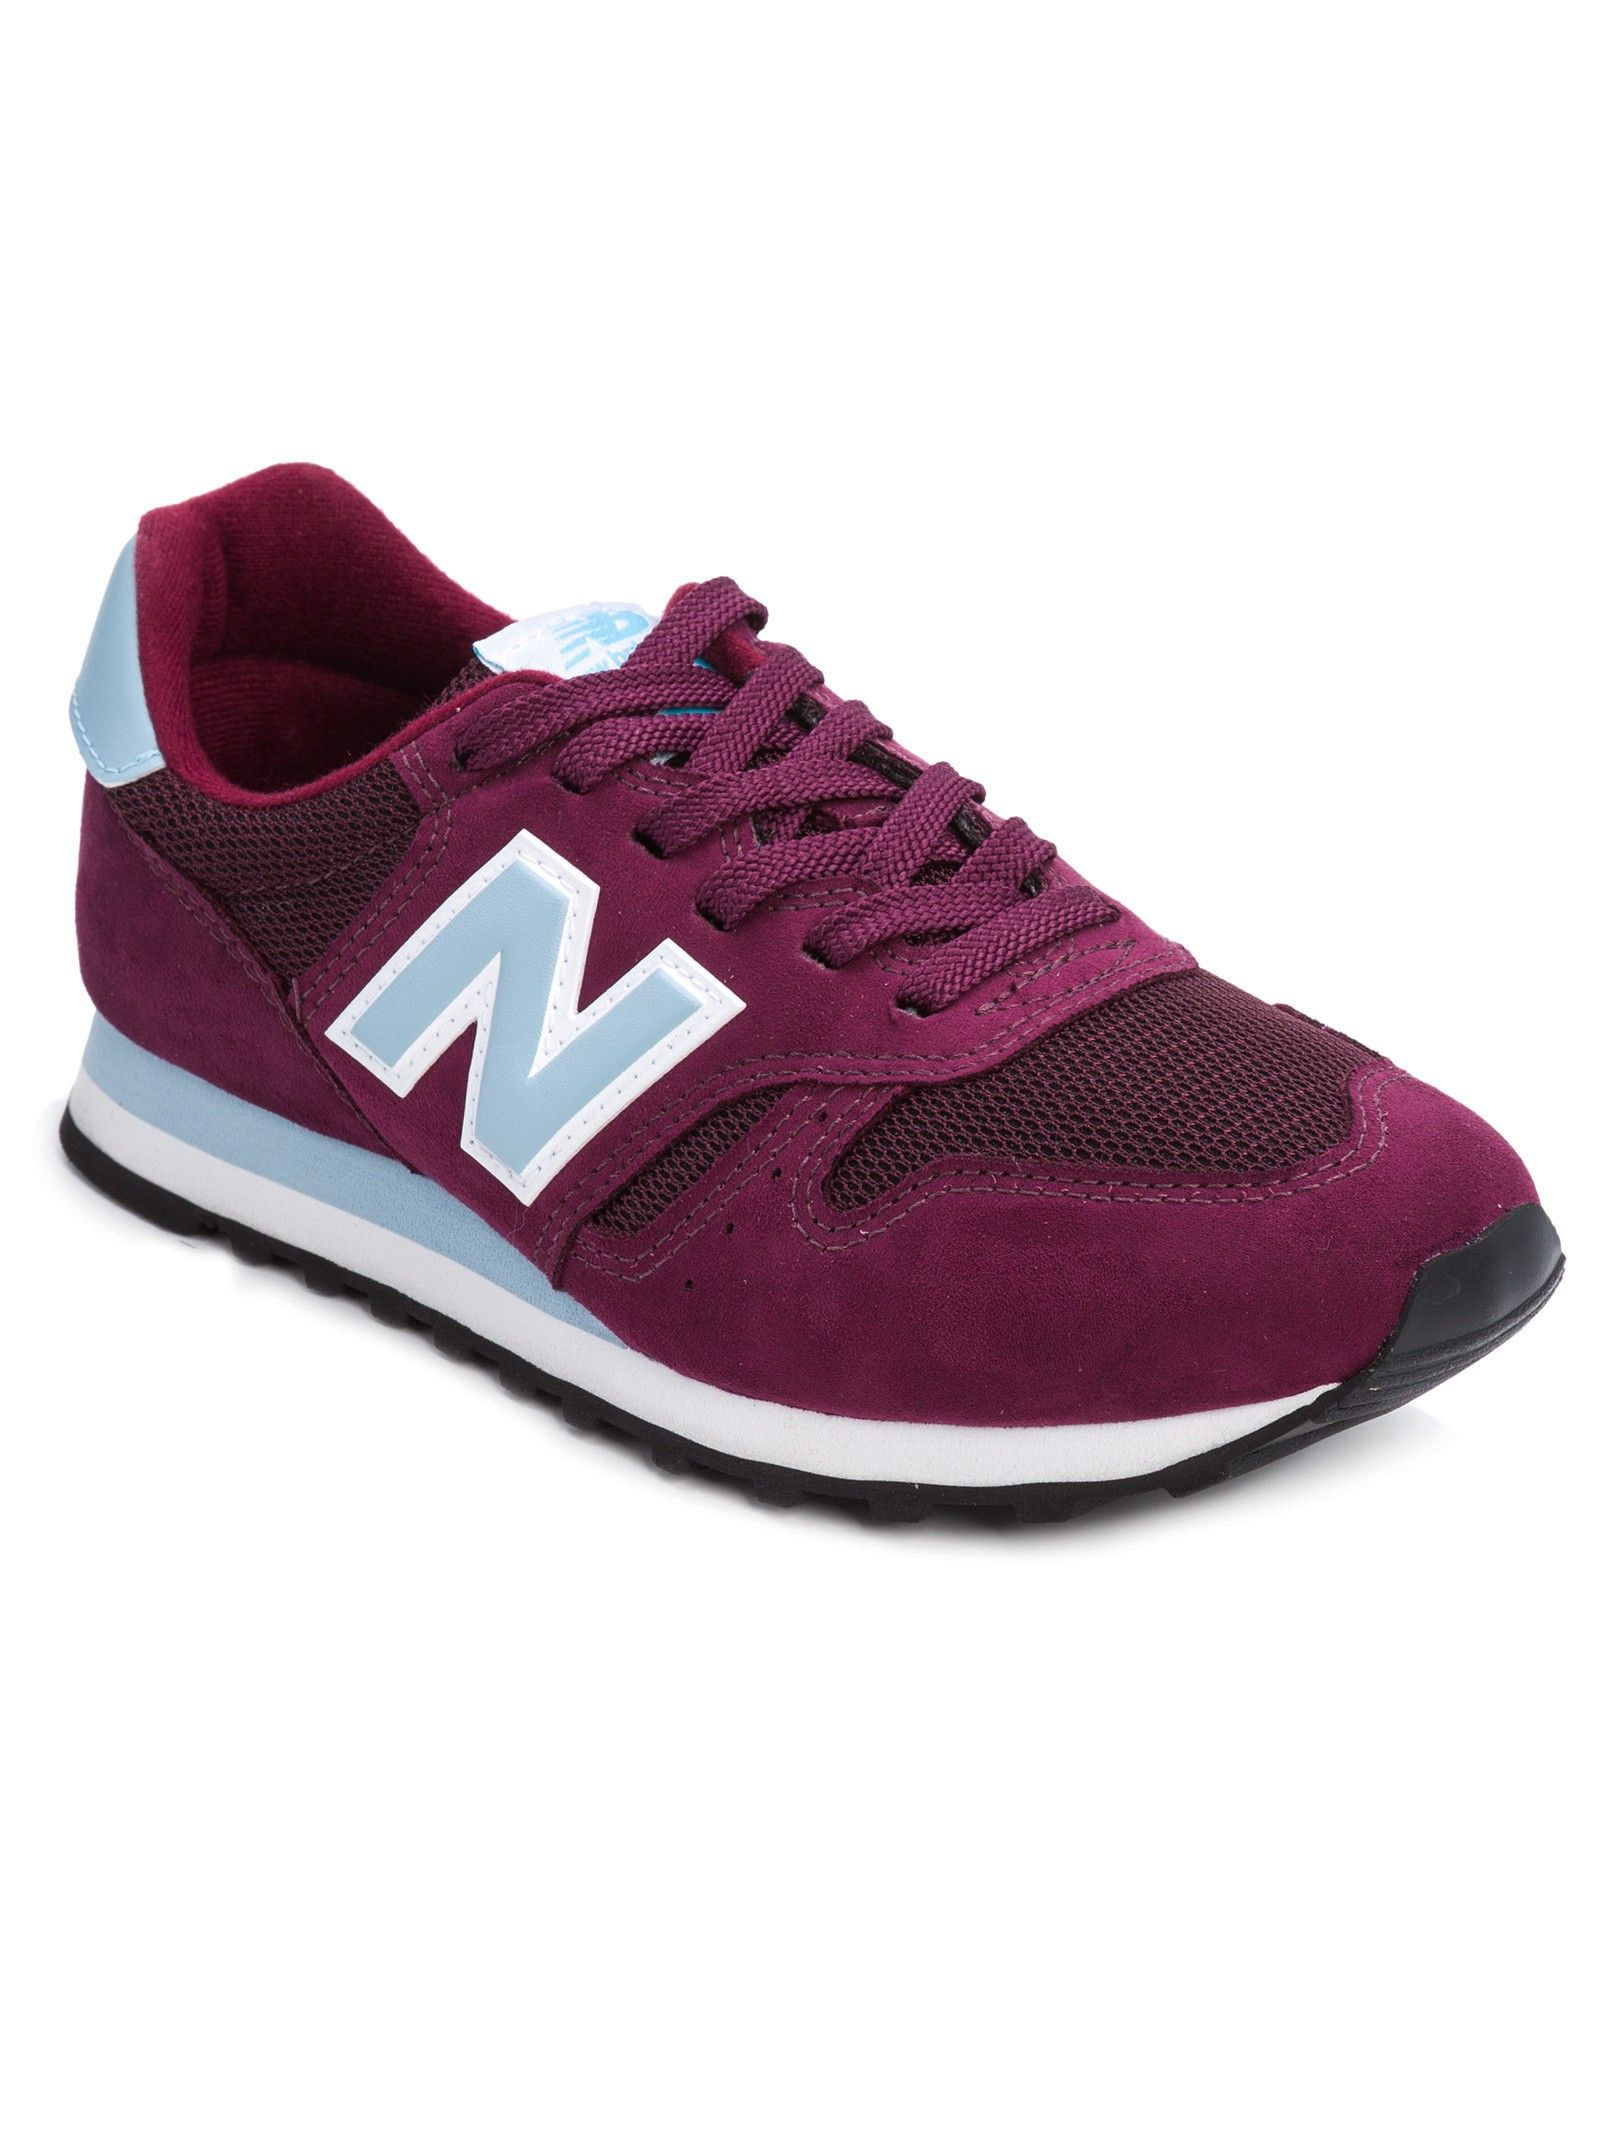 7e3cb4c7976 Shop2gether - Tênis Feminino M574bb36 - New Balance - Roxo